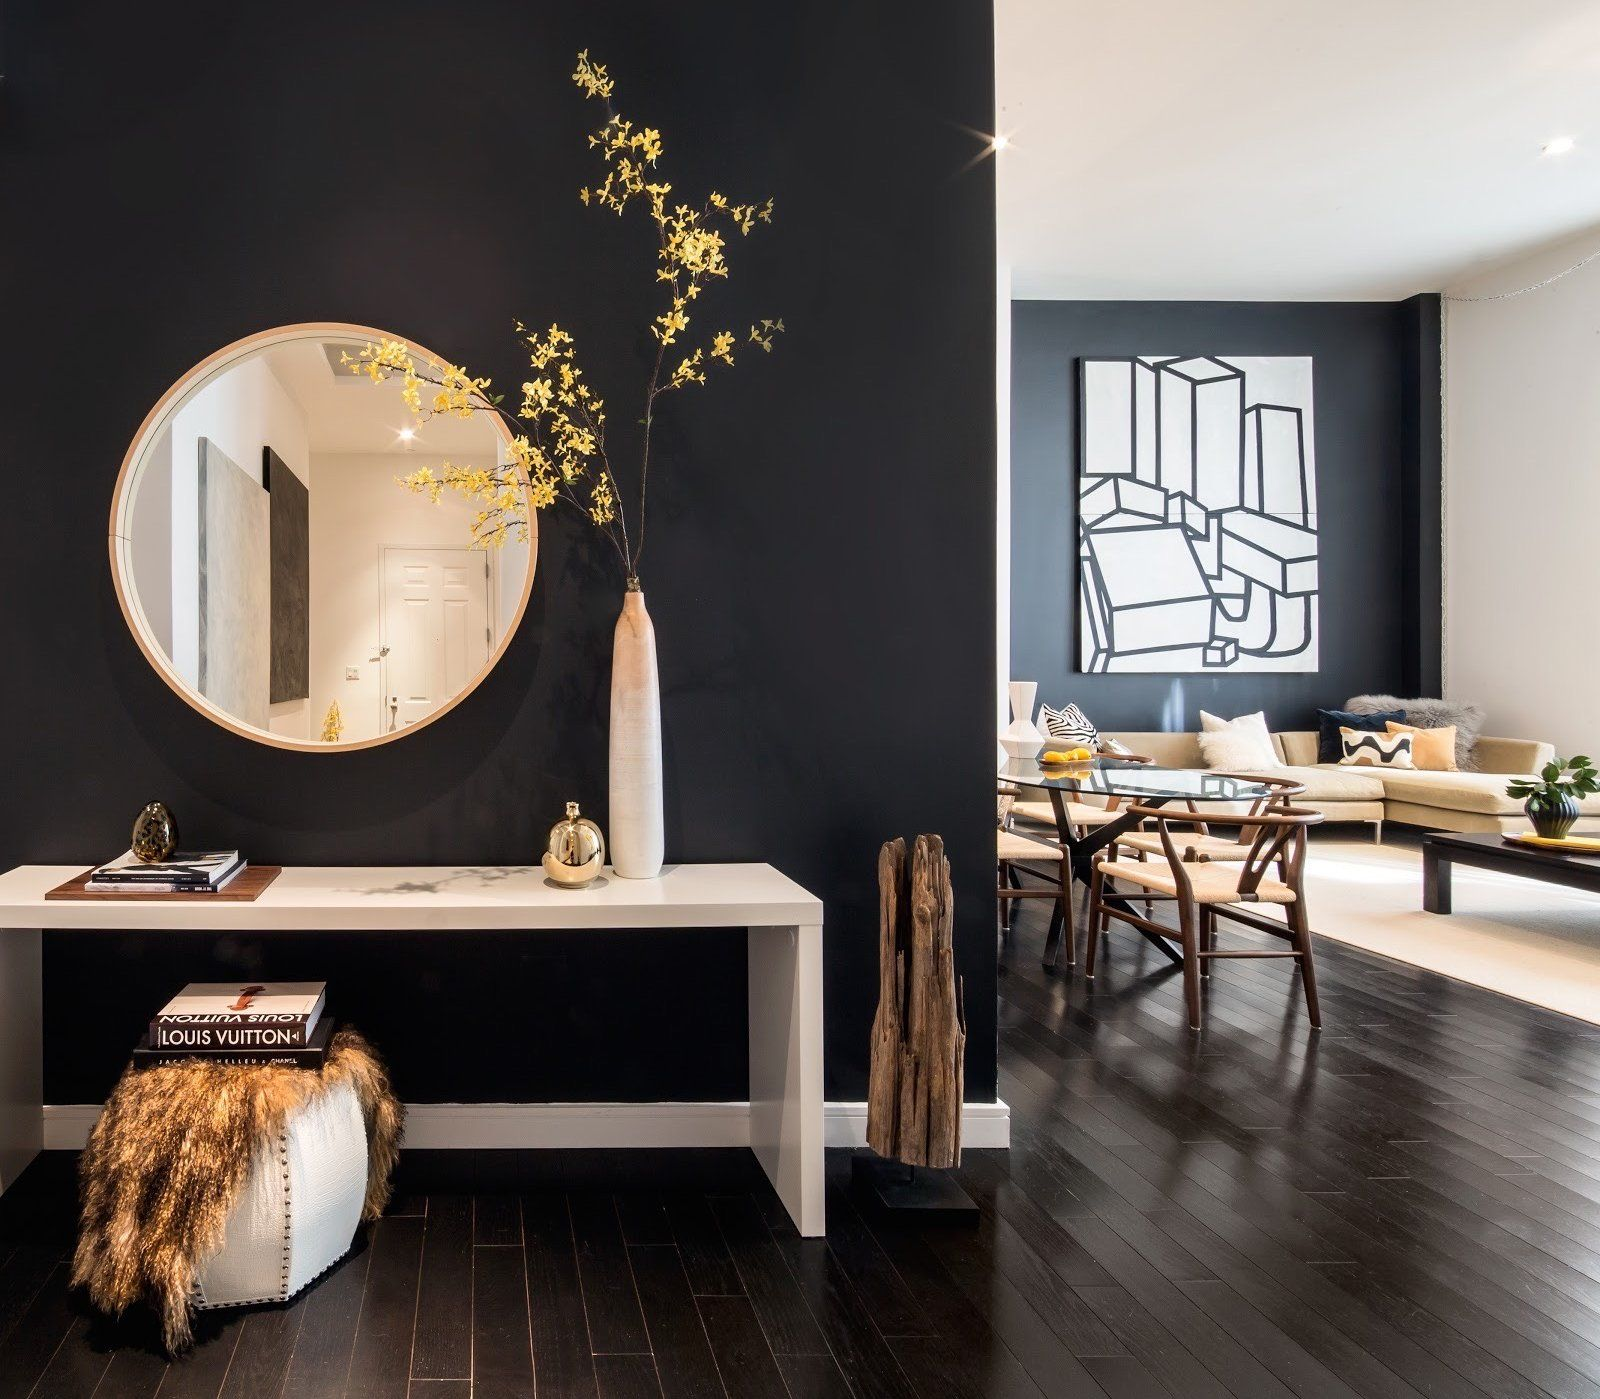 Small Nyc Apartment Living Room Ideas: Making An Entrance - The New York Times In 2019